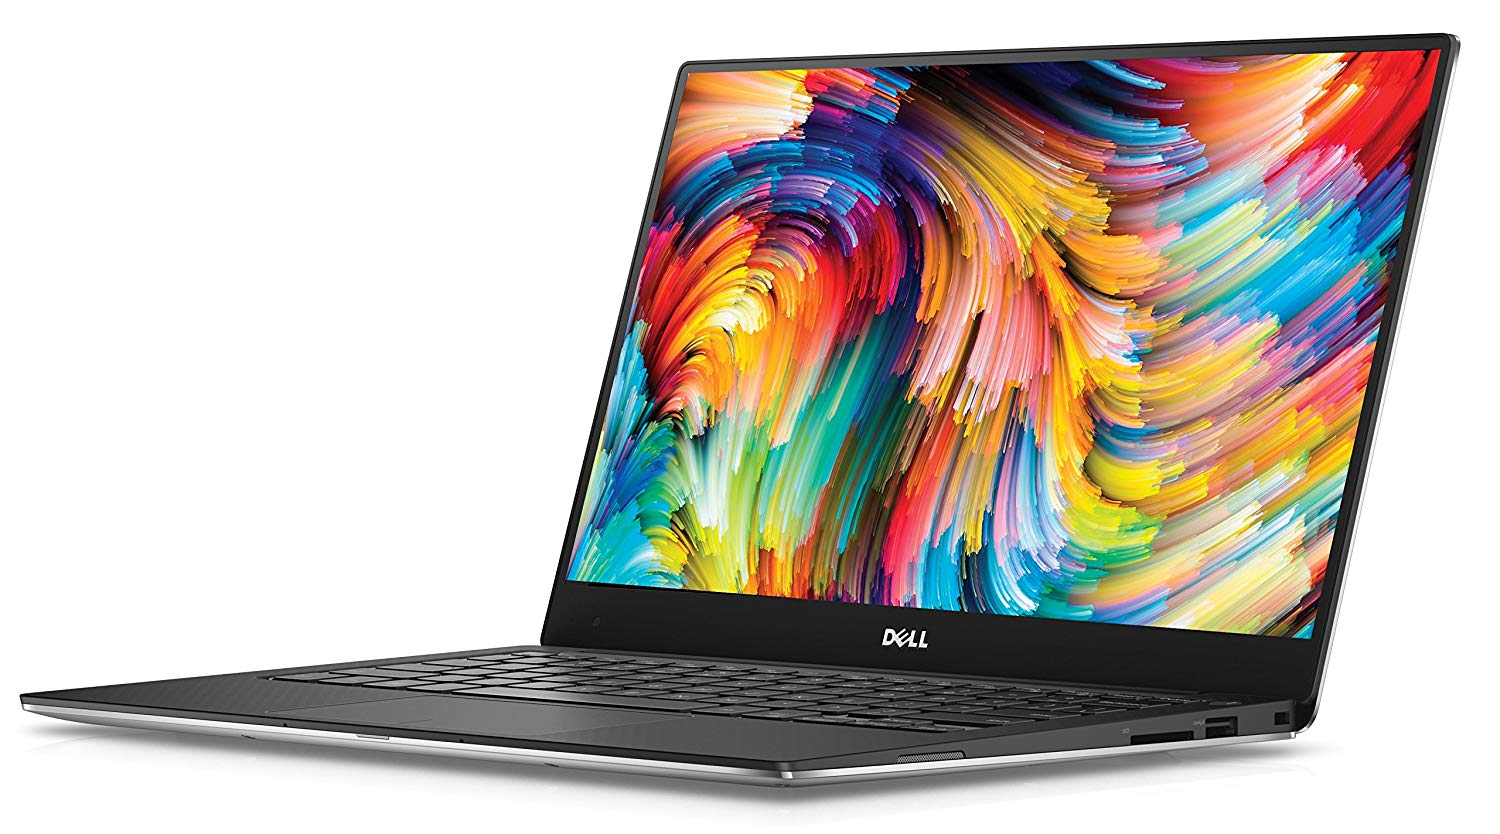 dell-xps-13-9360-core-i5-the-he-8-ram-8gb-ssd-256gb-133-fhd-ips